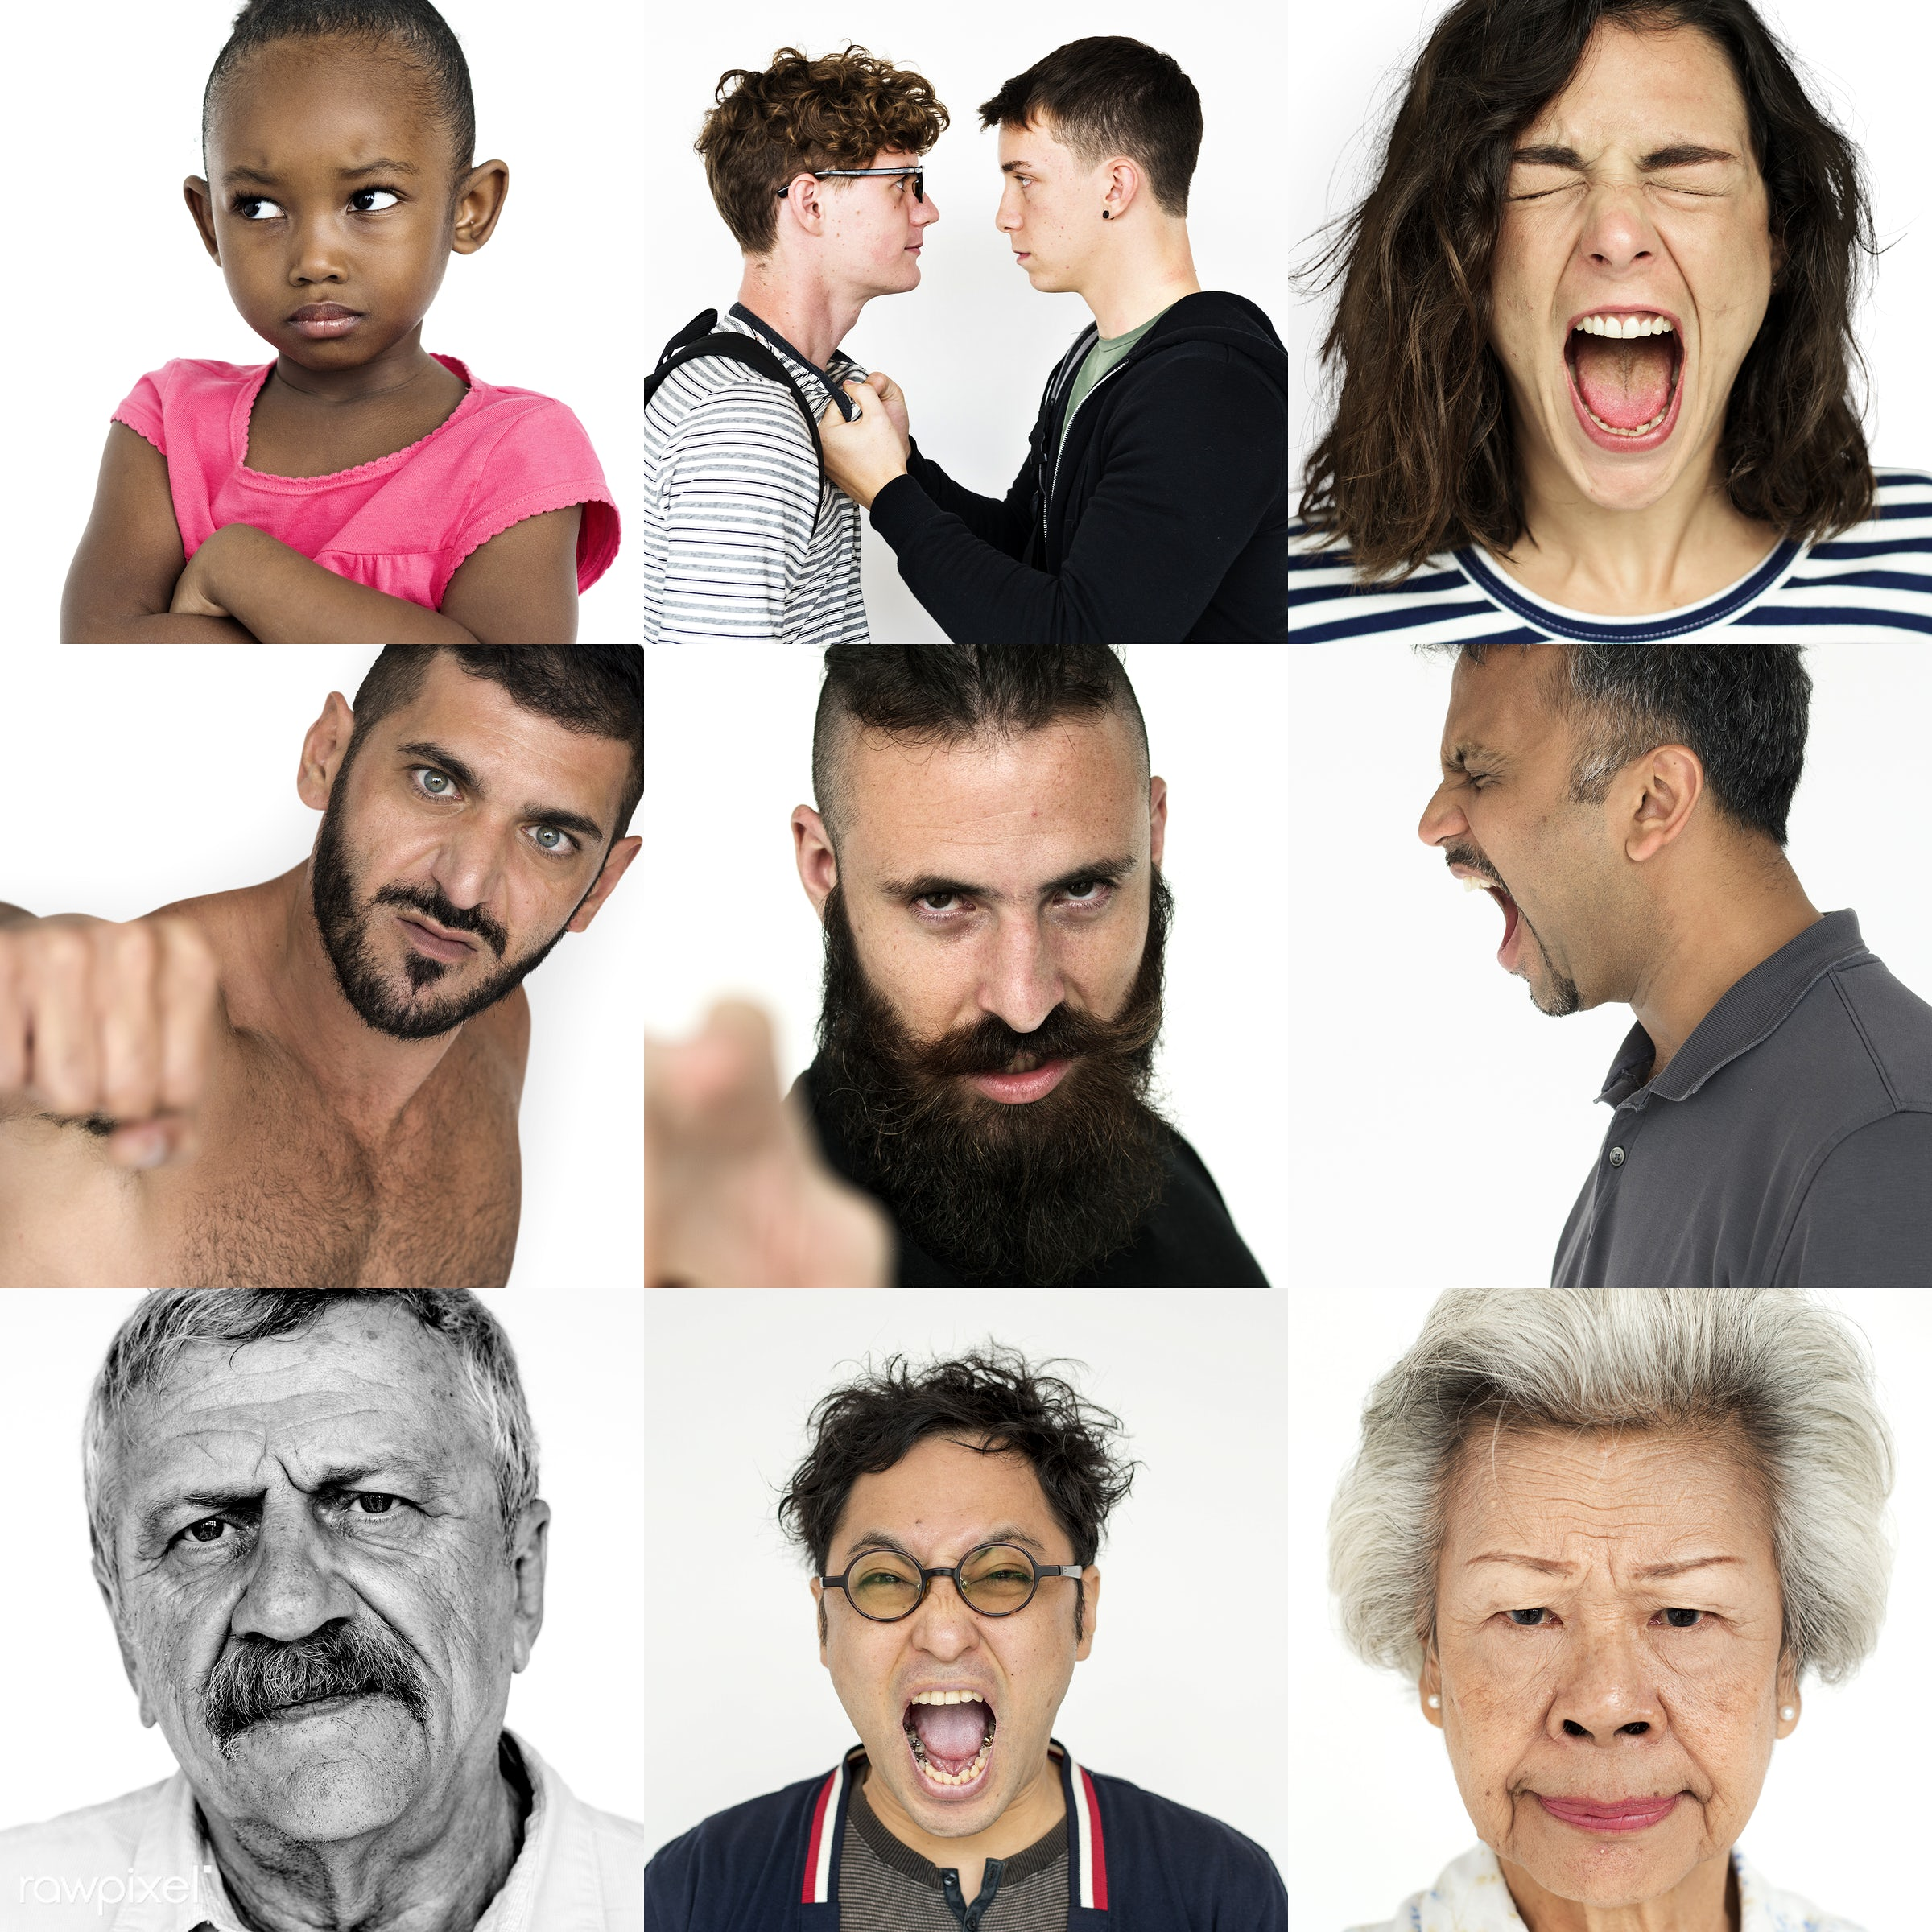 different, voice, diverse, announce, variation, angry, loudspeaker, people, race, mad, upset, integration, gender, screaming...